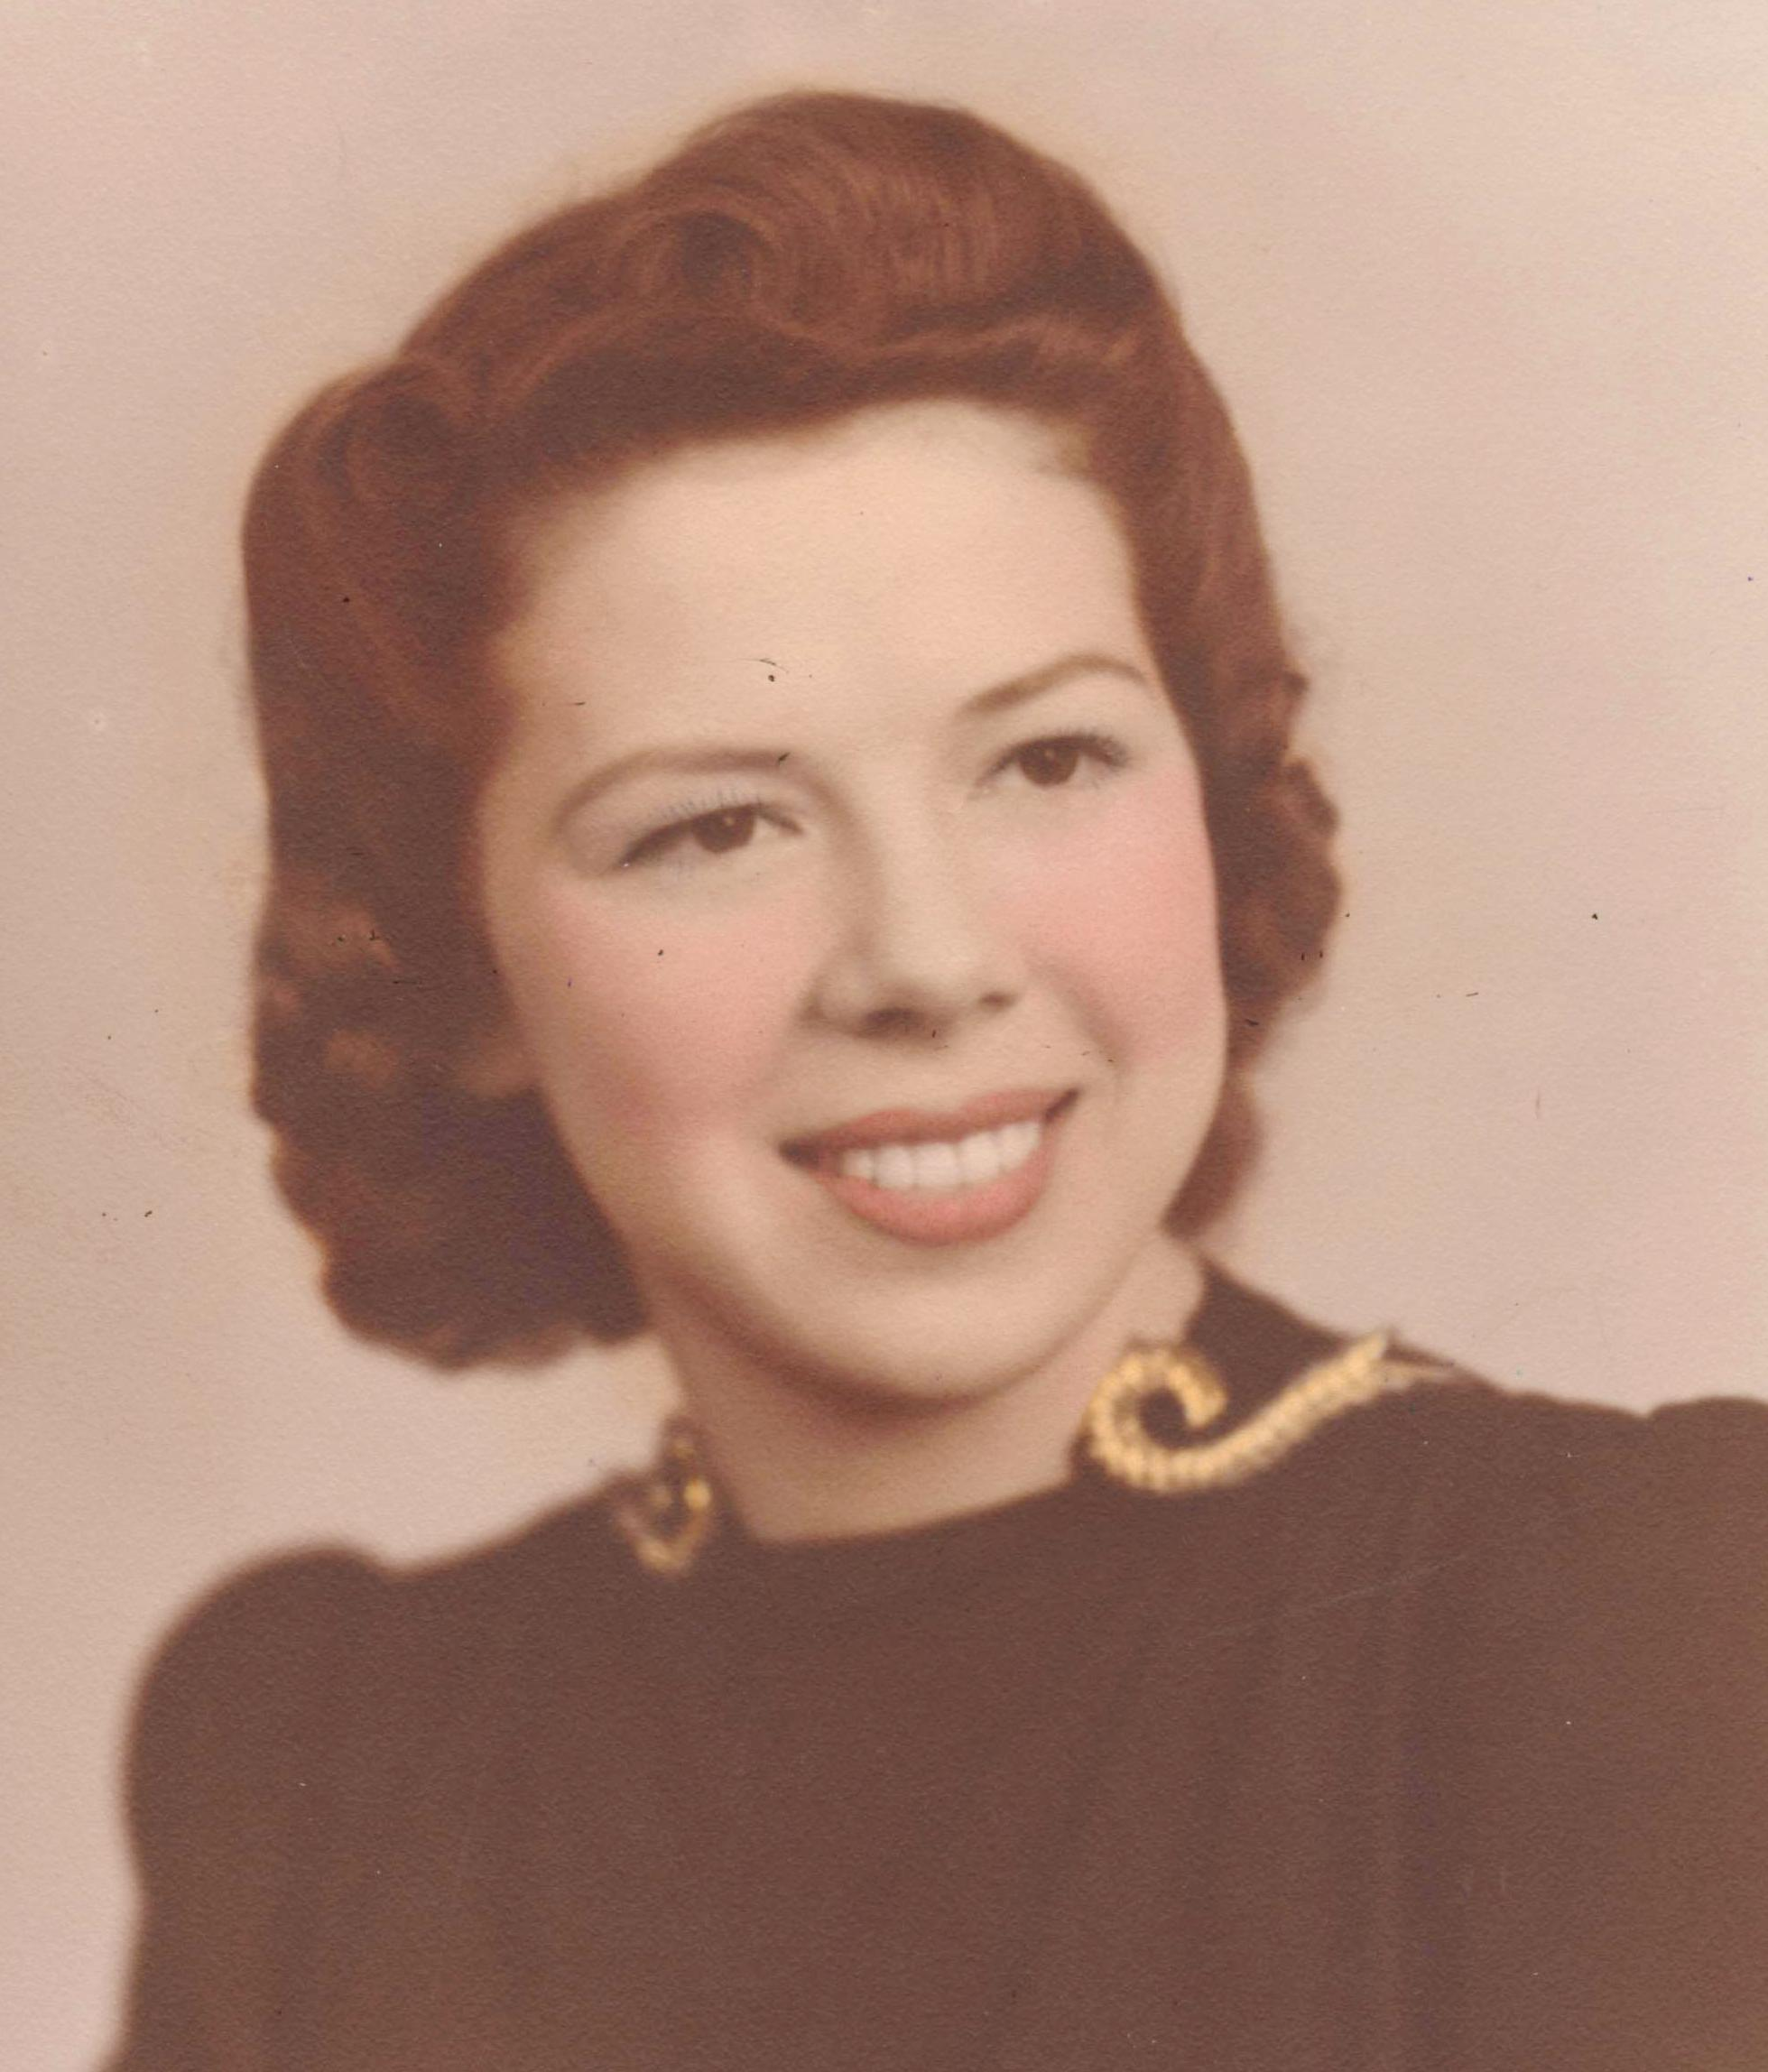 WANDA WILLIAMS REHBERG